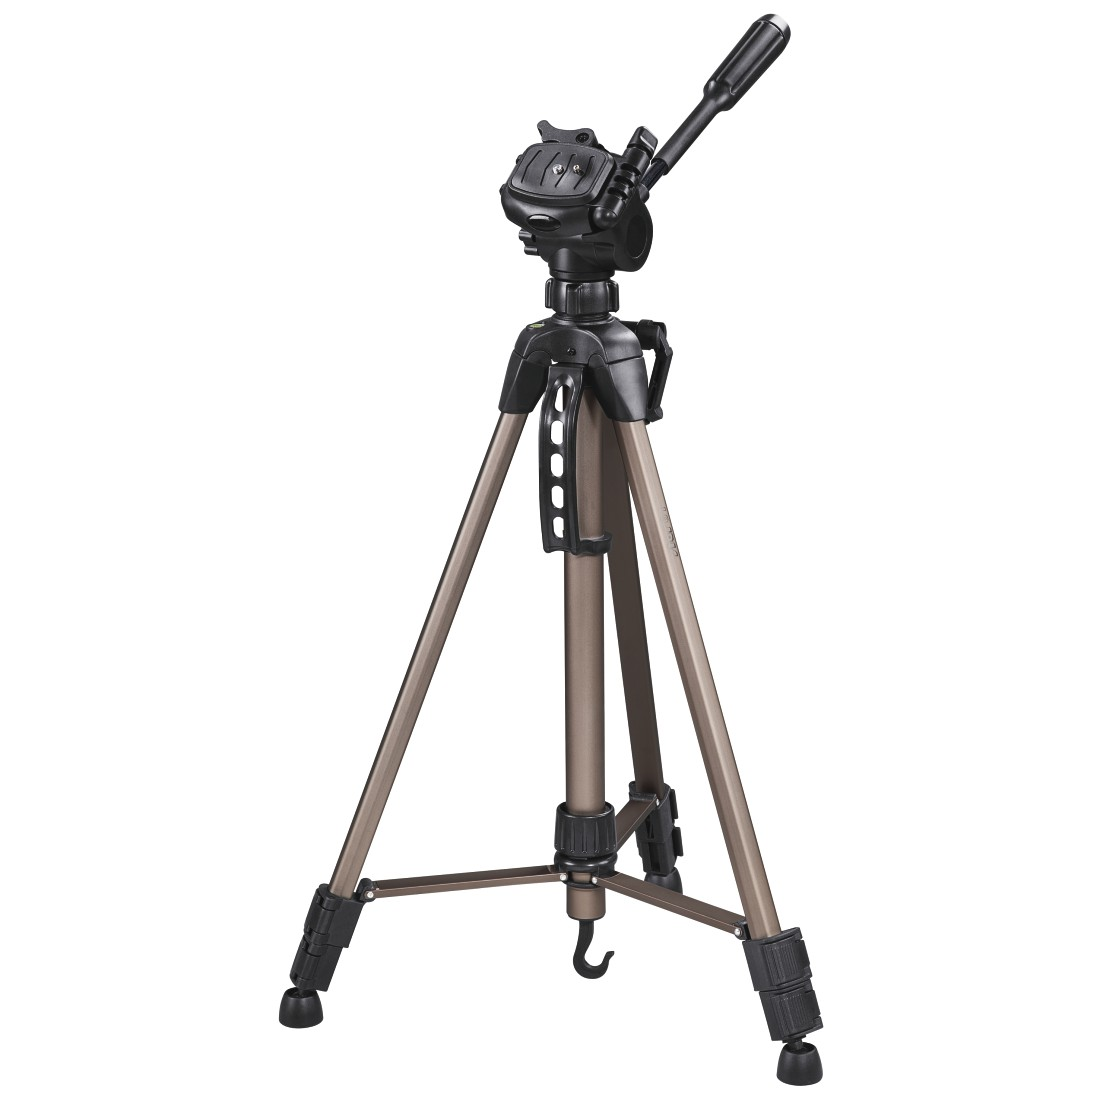 abx High-Res Image - Hama, Star 61 Tripod